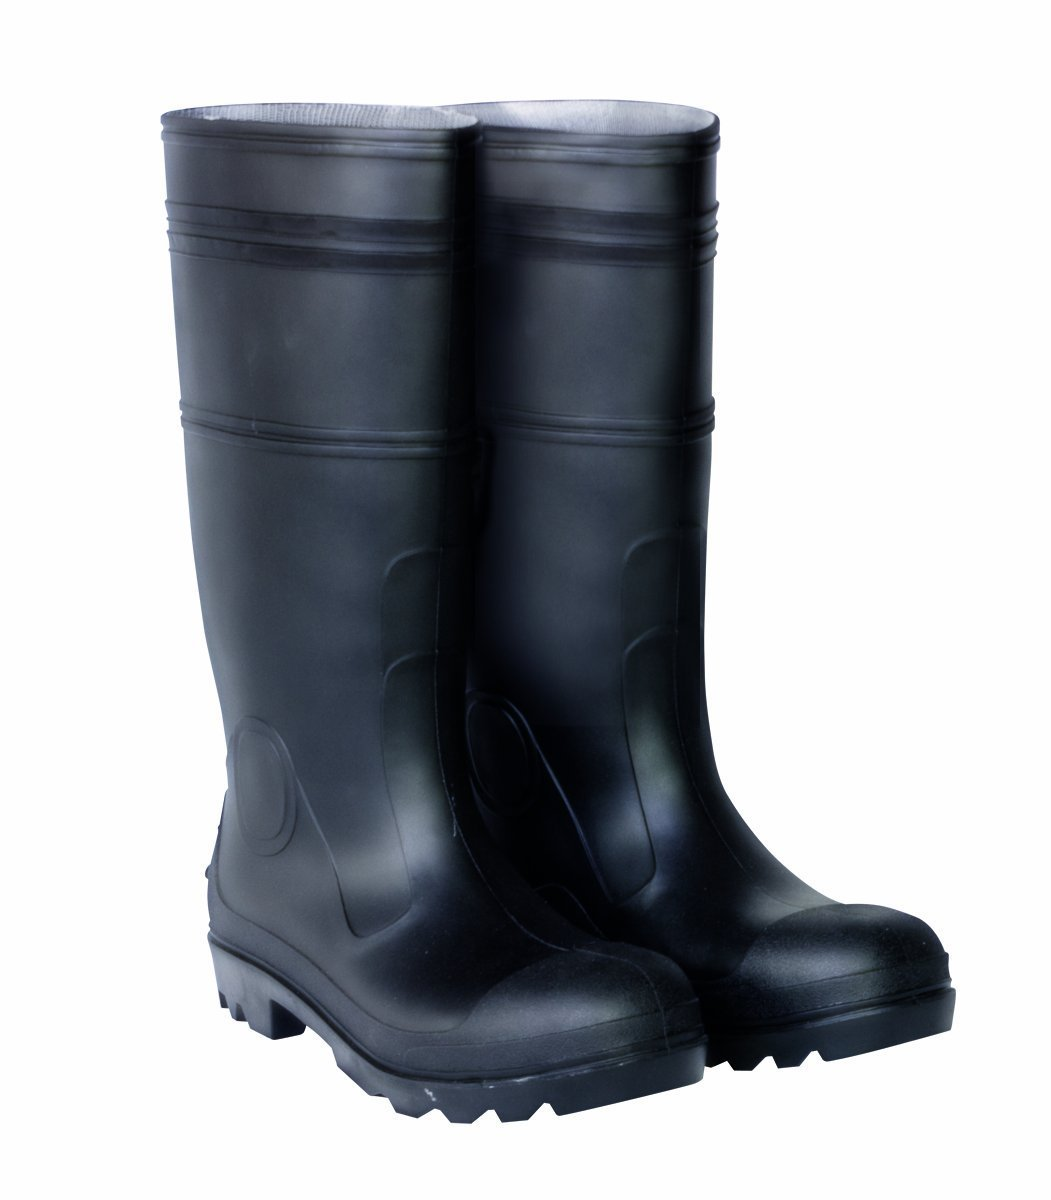 CLC Custom Leathercraft Rain Wear F23011 Over The Sock Black PVC Men's Rain Boot, Size 11 CLC Rain Wear R23011